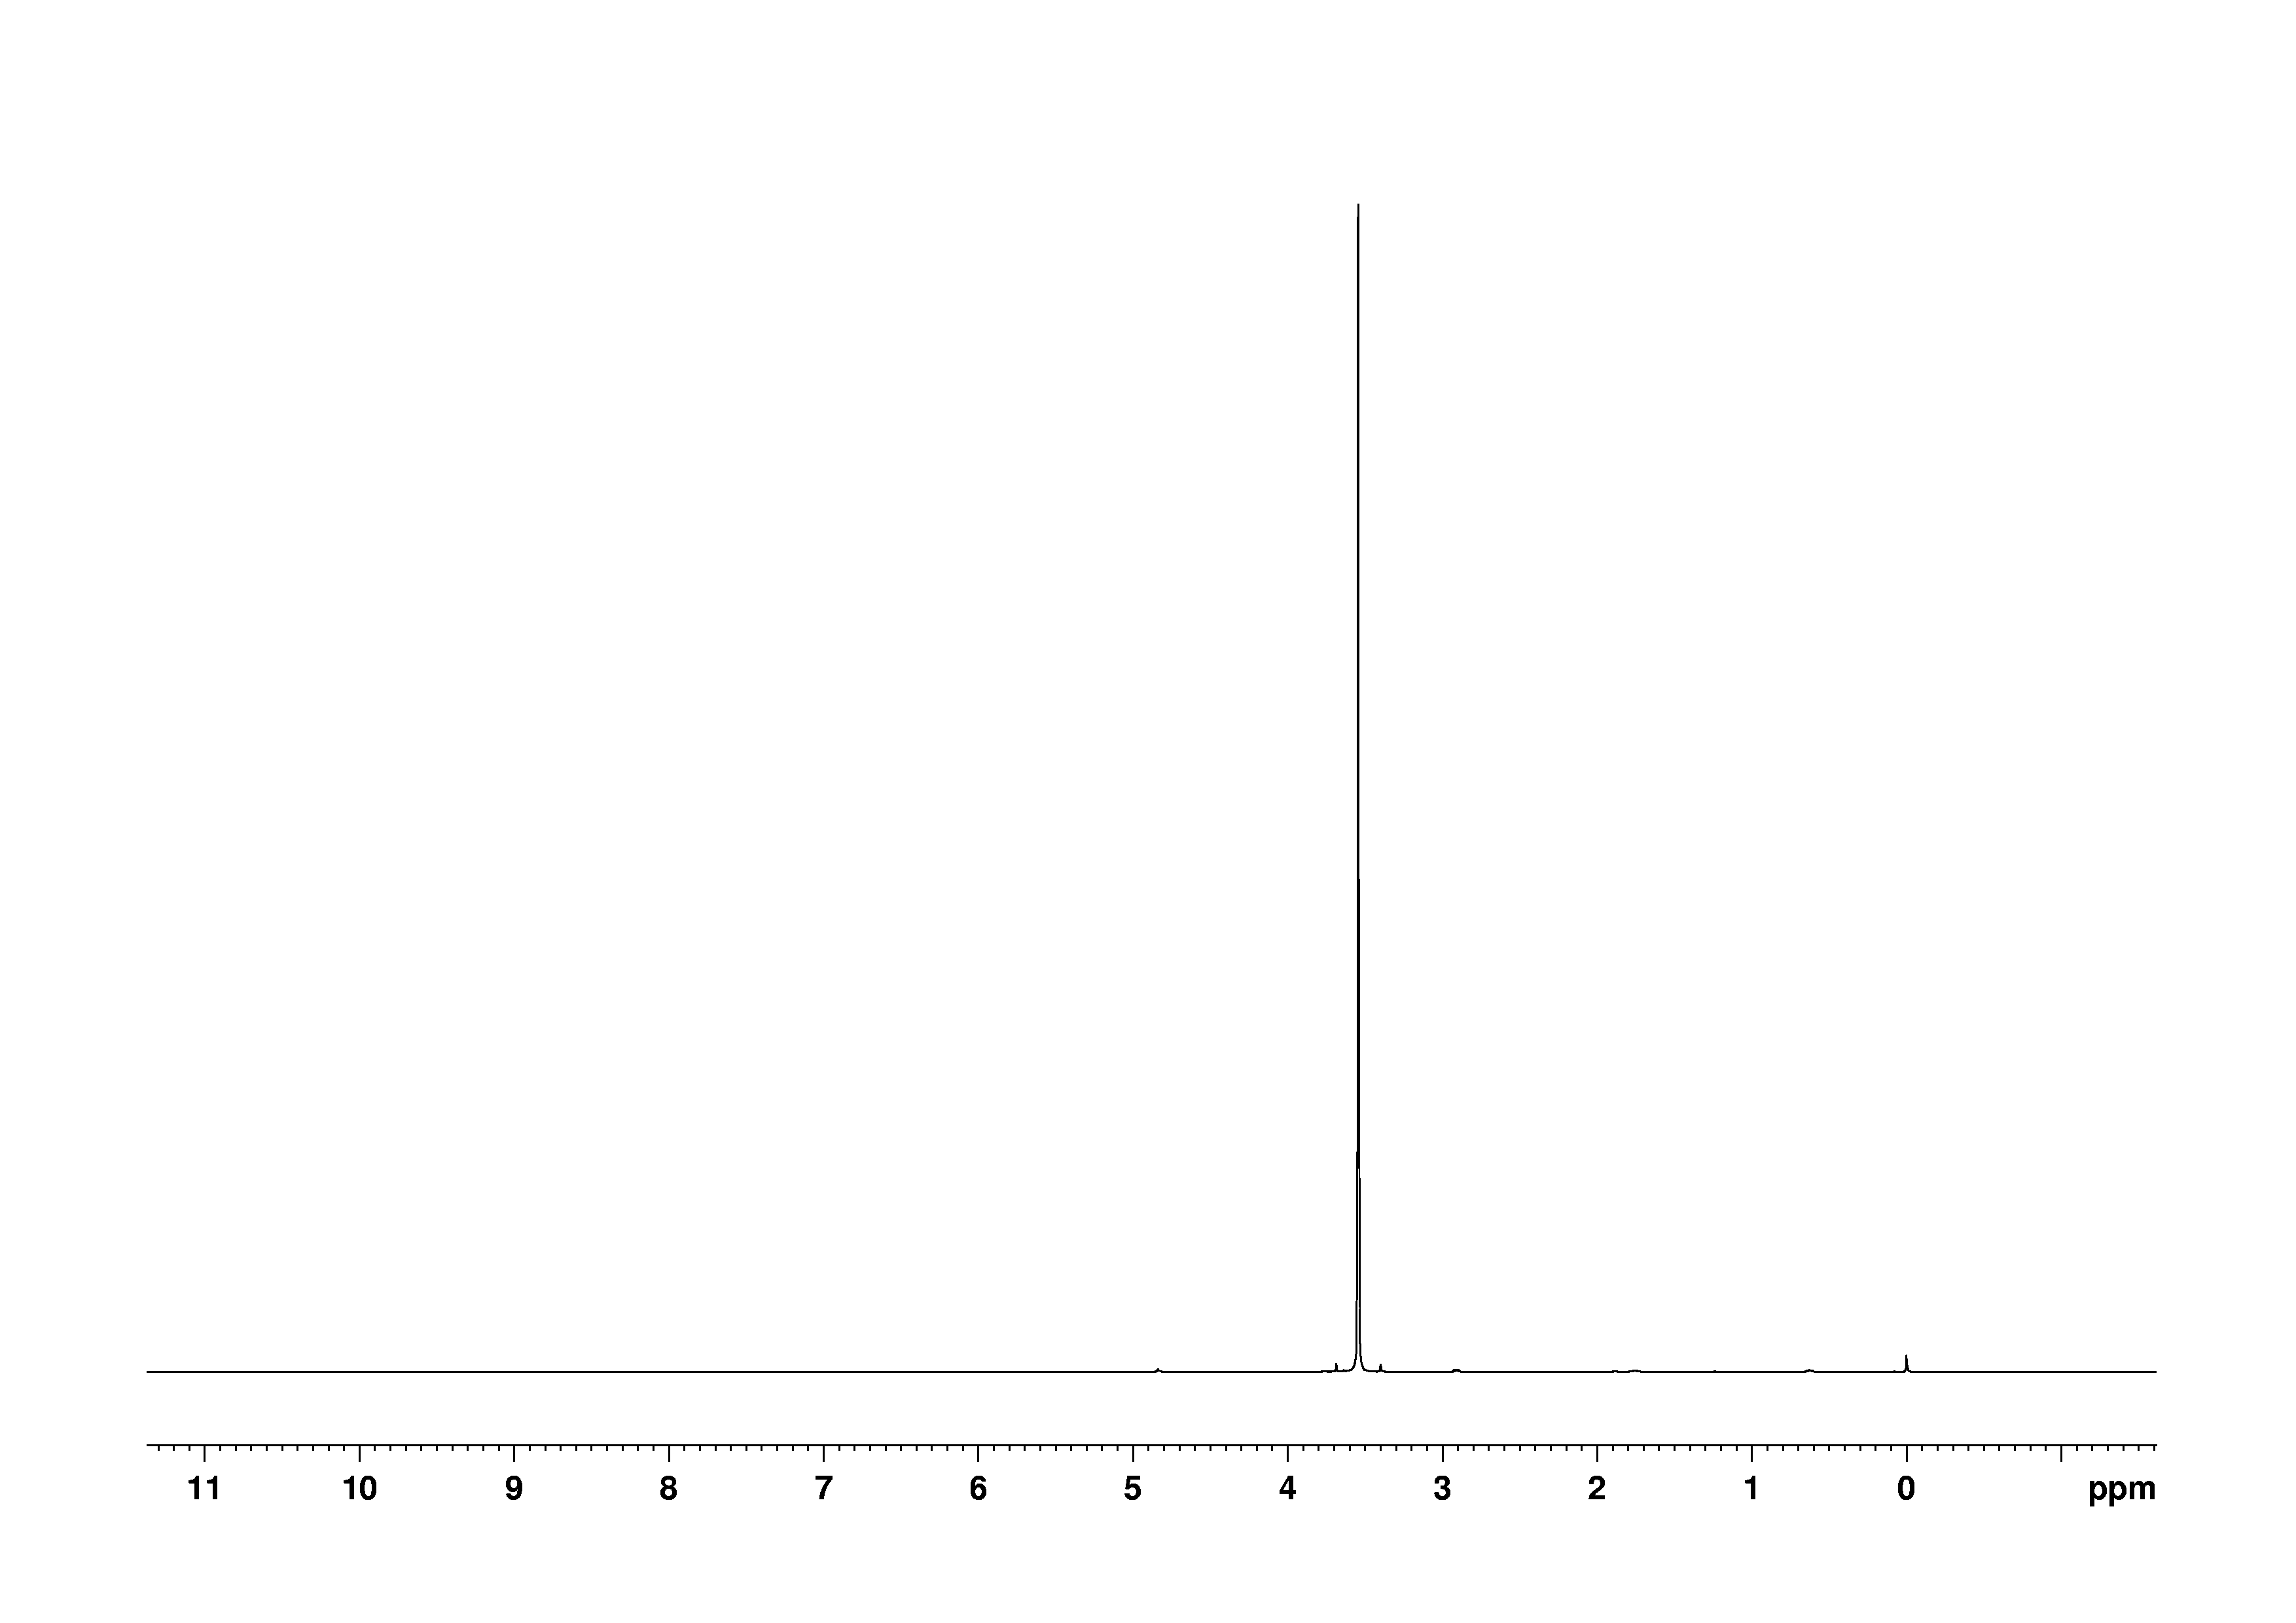 1D 1H, 7.4 spectrum for Glycine